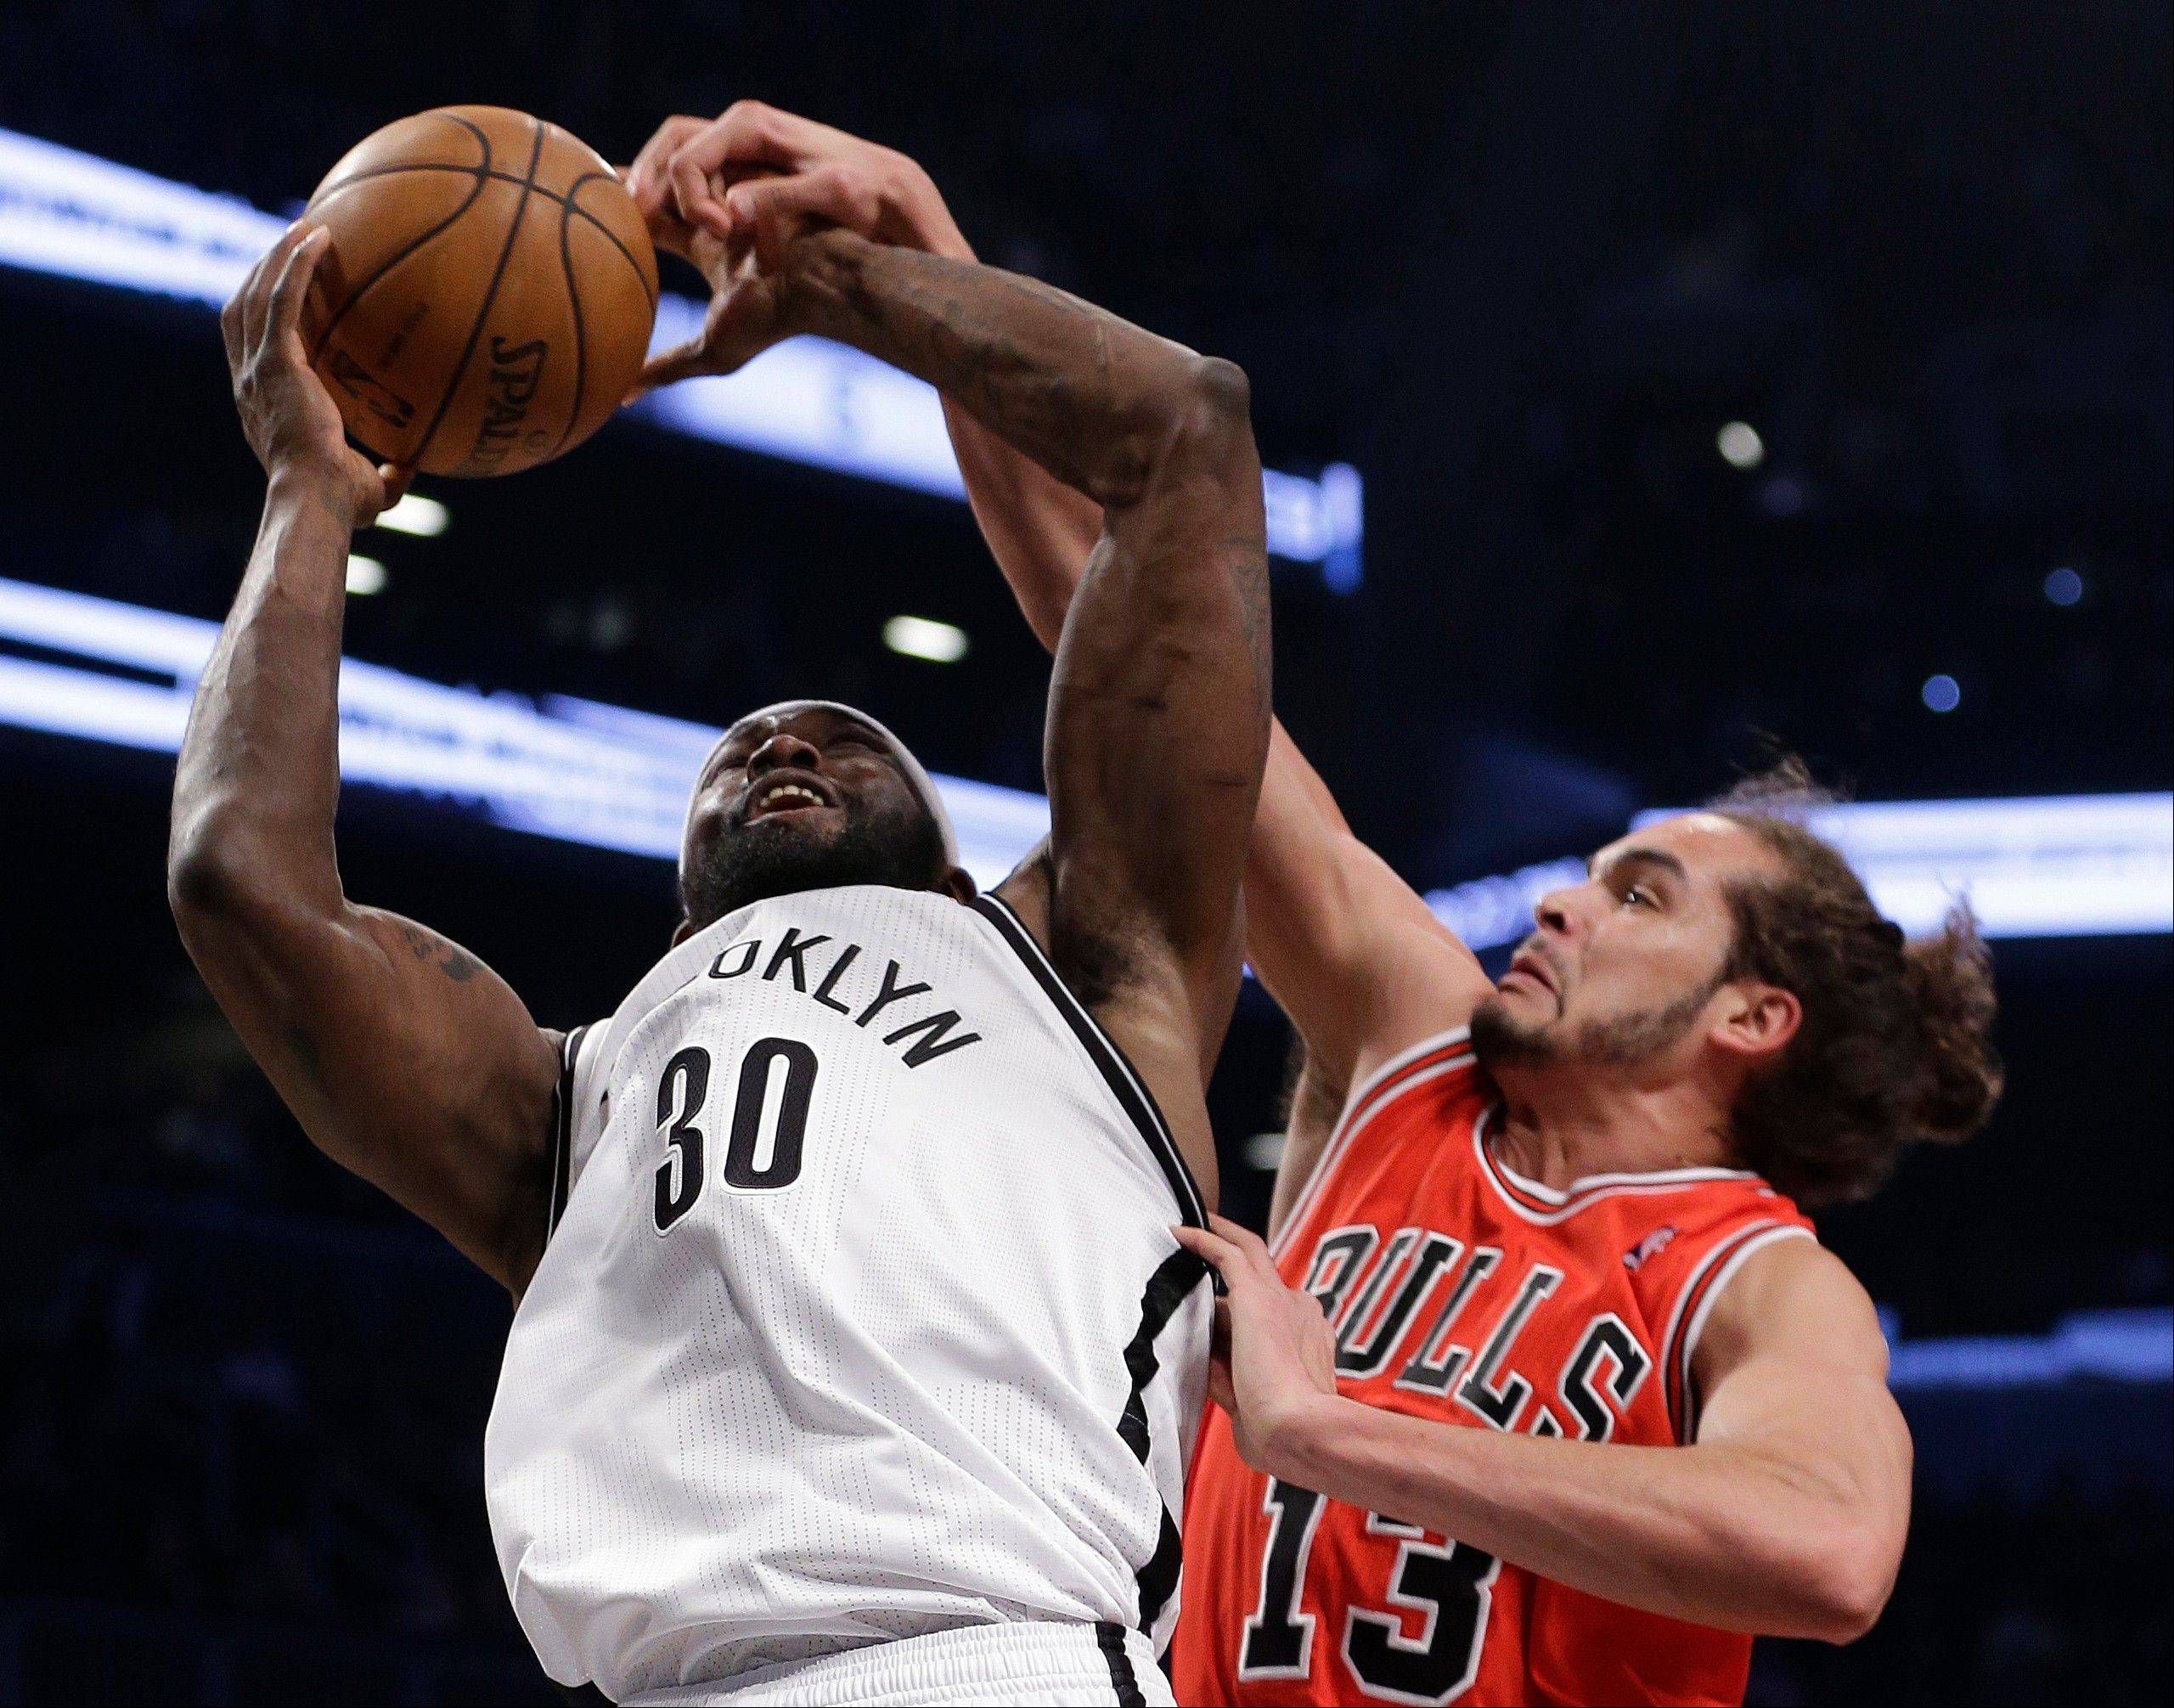 Bulls center Joakim Noah tries to block Brooklyn Nets forward Reggie Evans in the first half of Game 2 on Monday night.